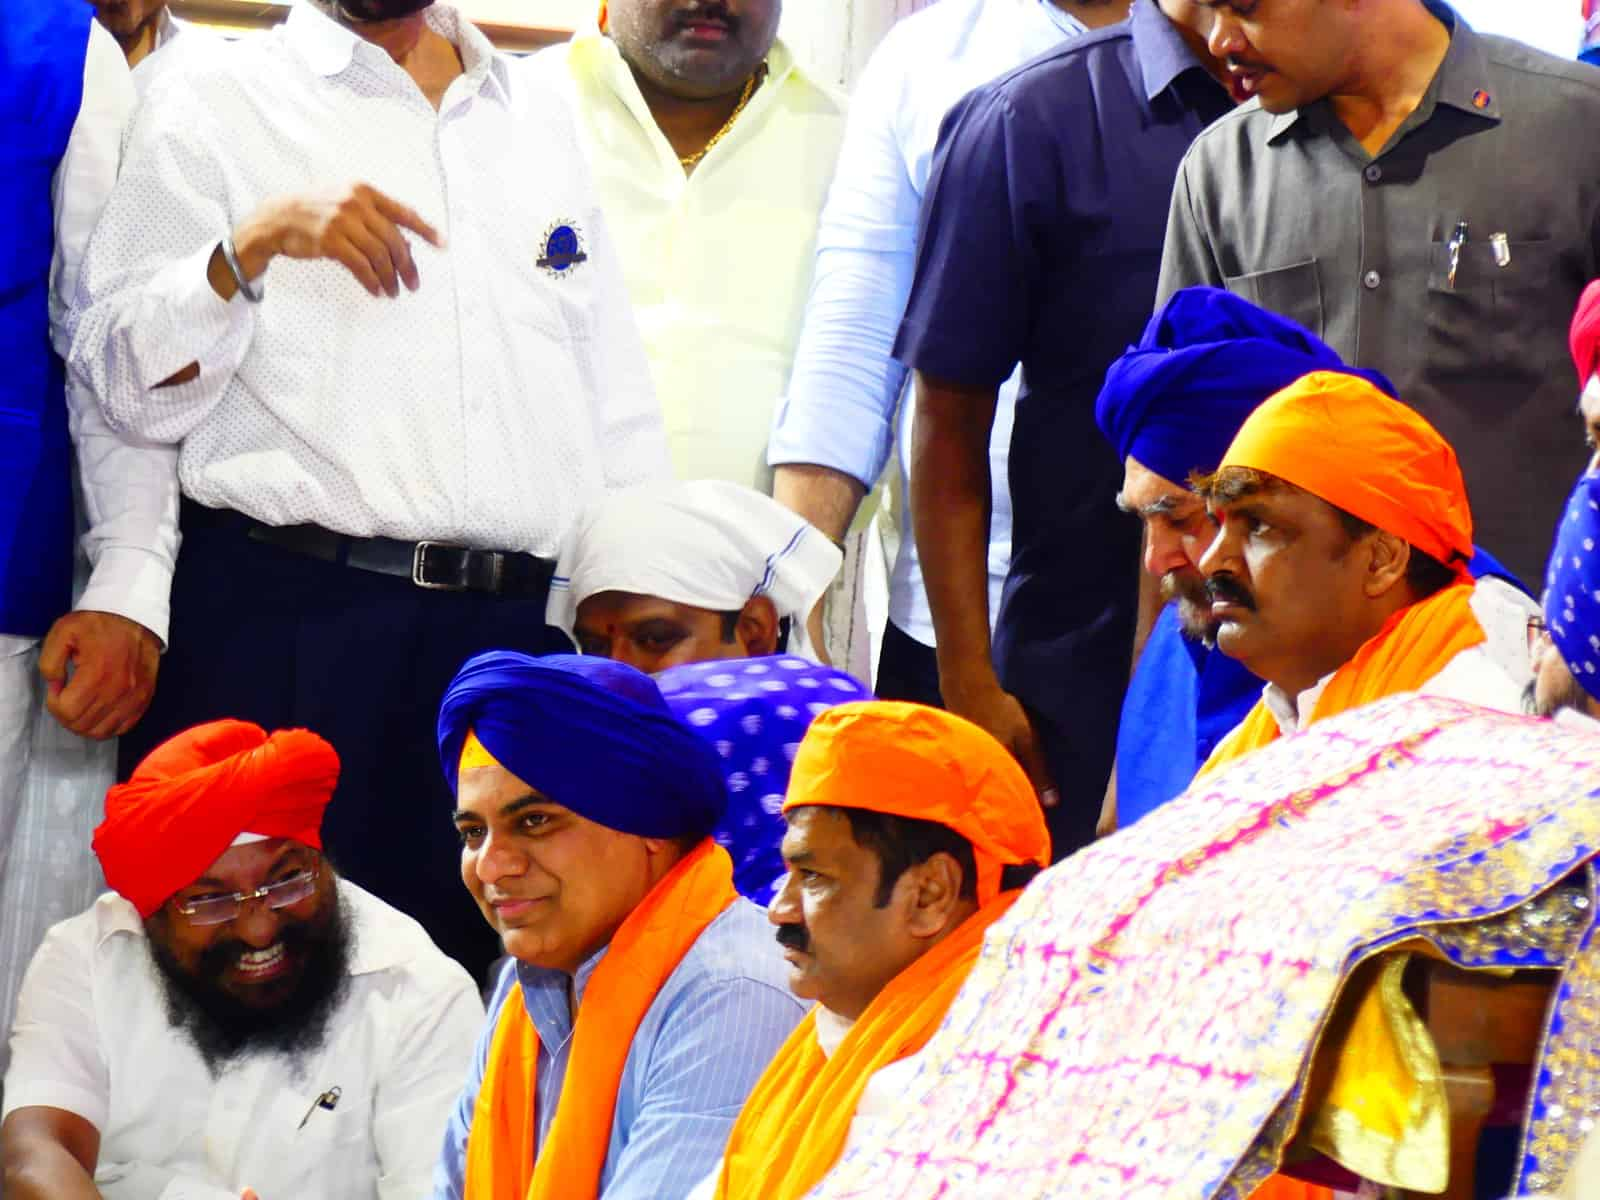 State government would extend all necessary support to the Sikh community: KTR